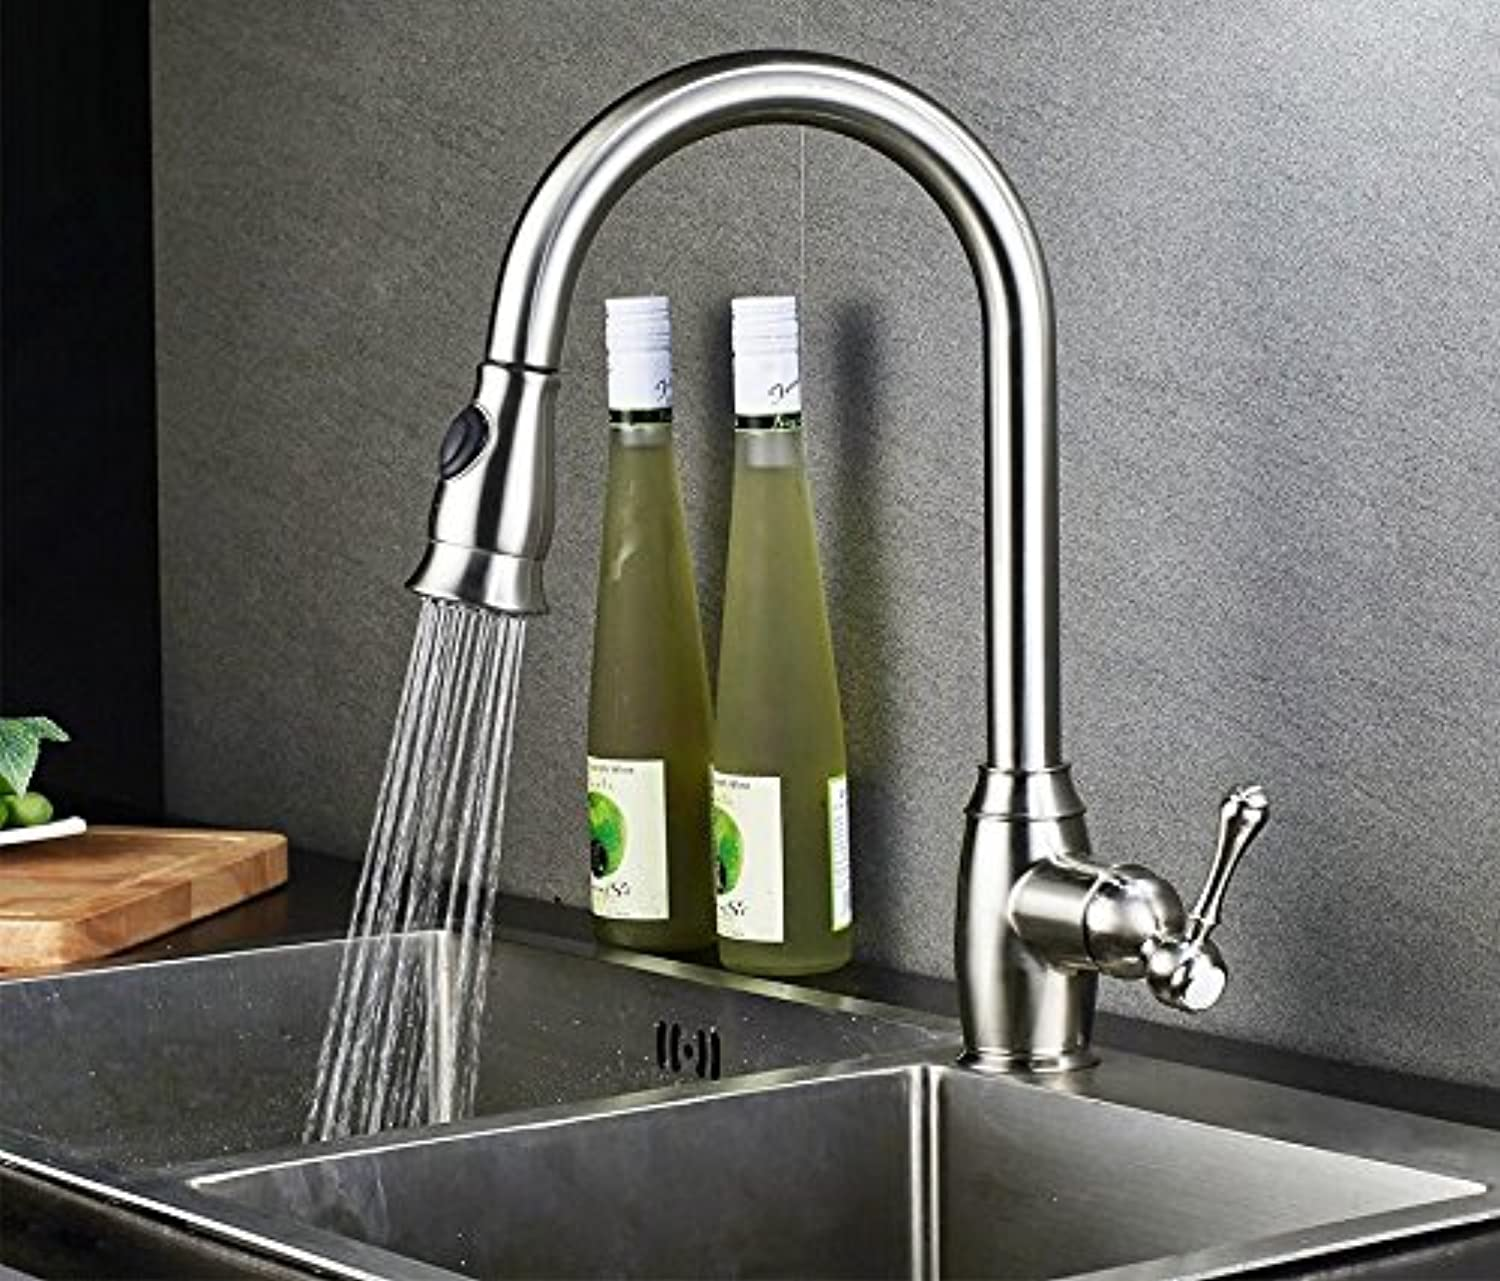 CZOOR Kitchen Faucets Nickel Brushed Single Handle Spring Pull Out Kitchen Tap 360 redate Swivel Sink Mixer Tap Hot Cold